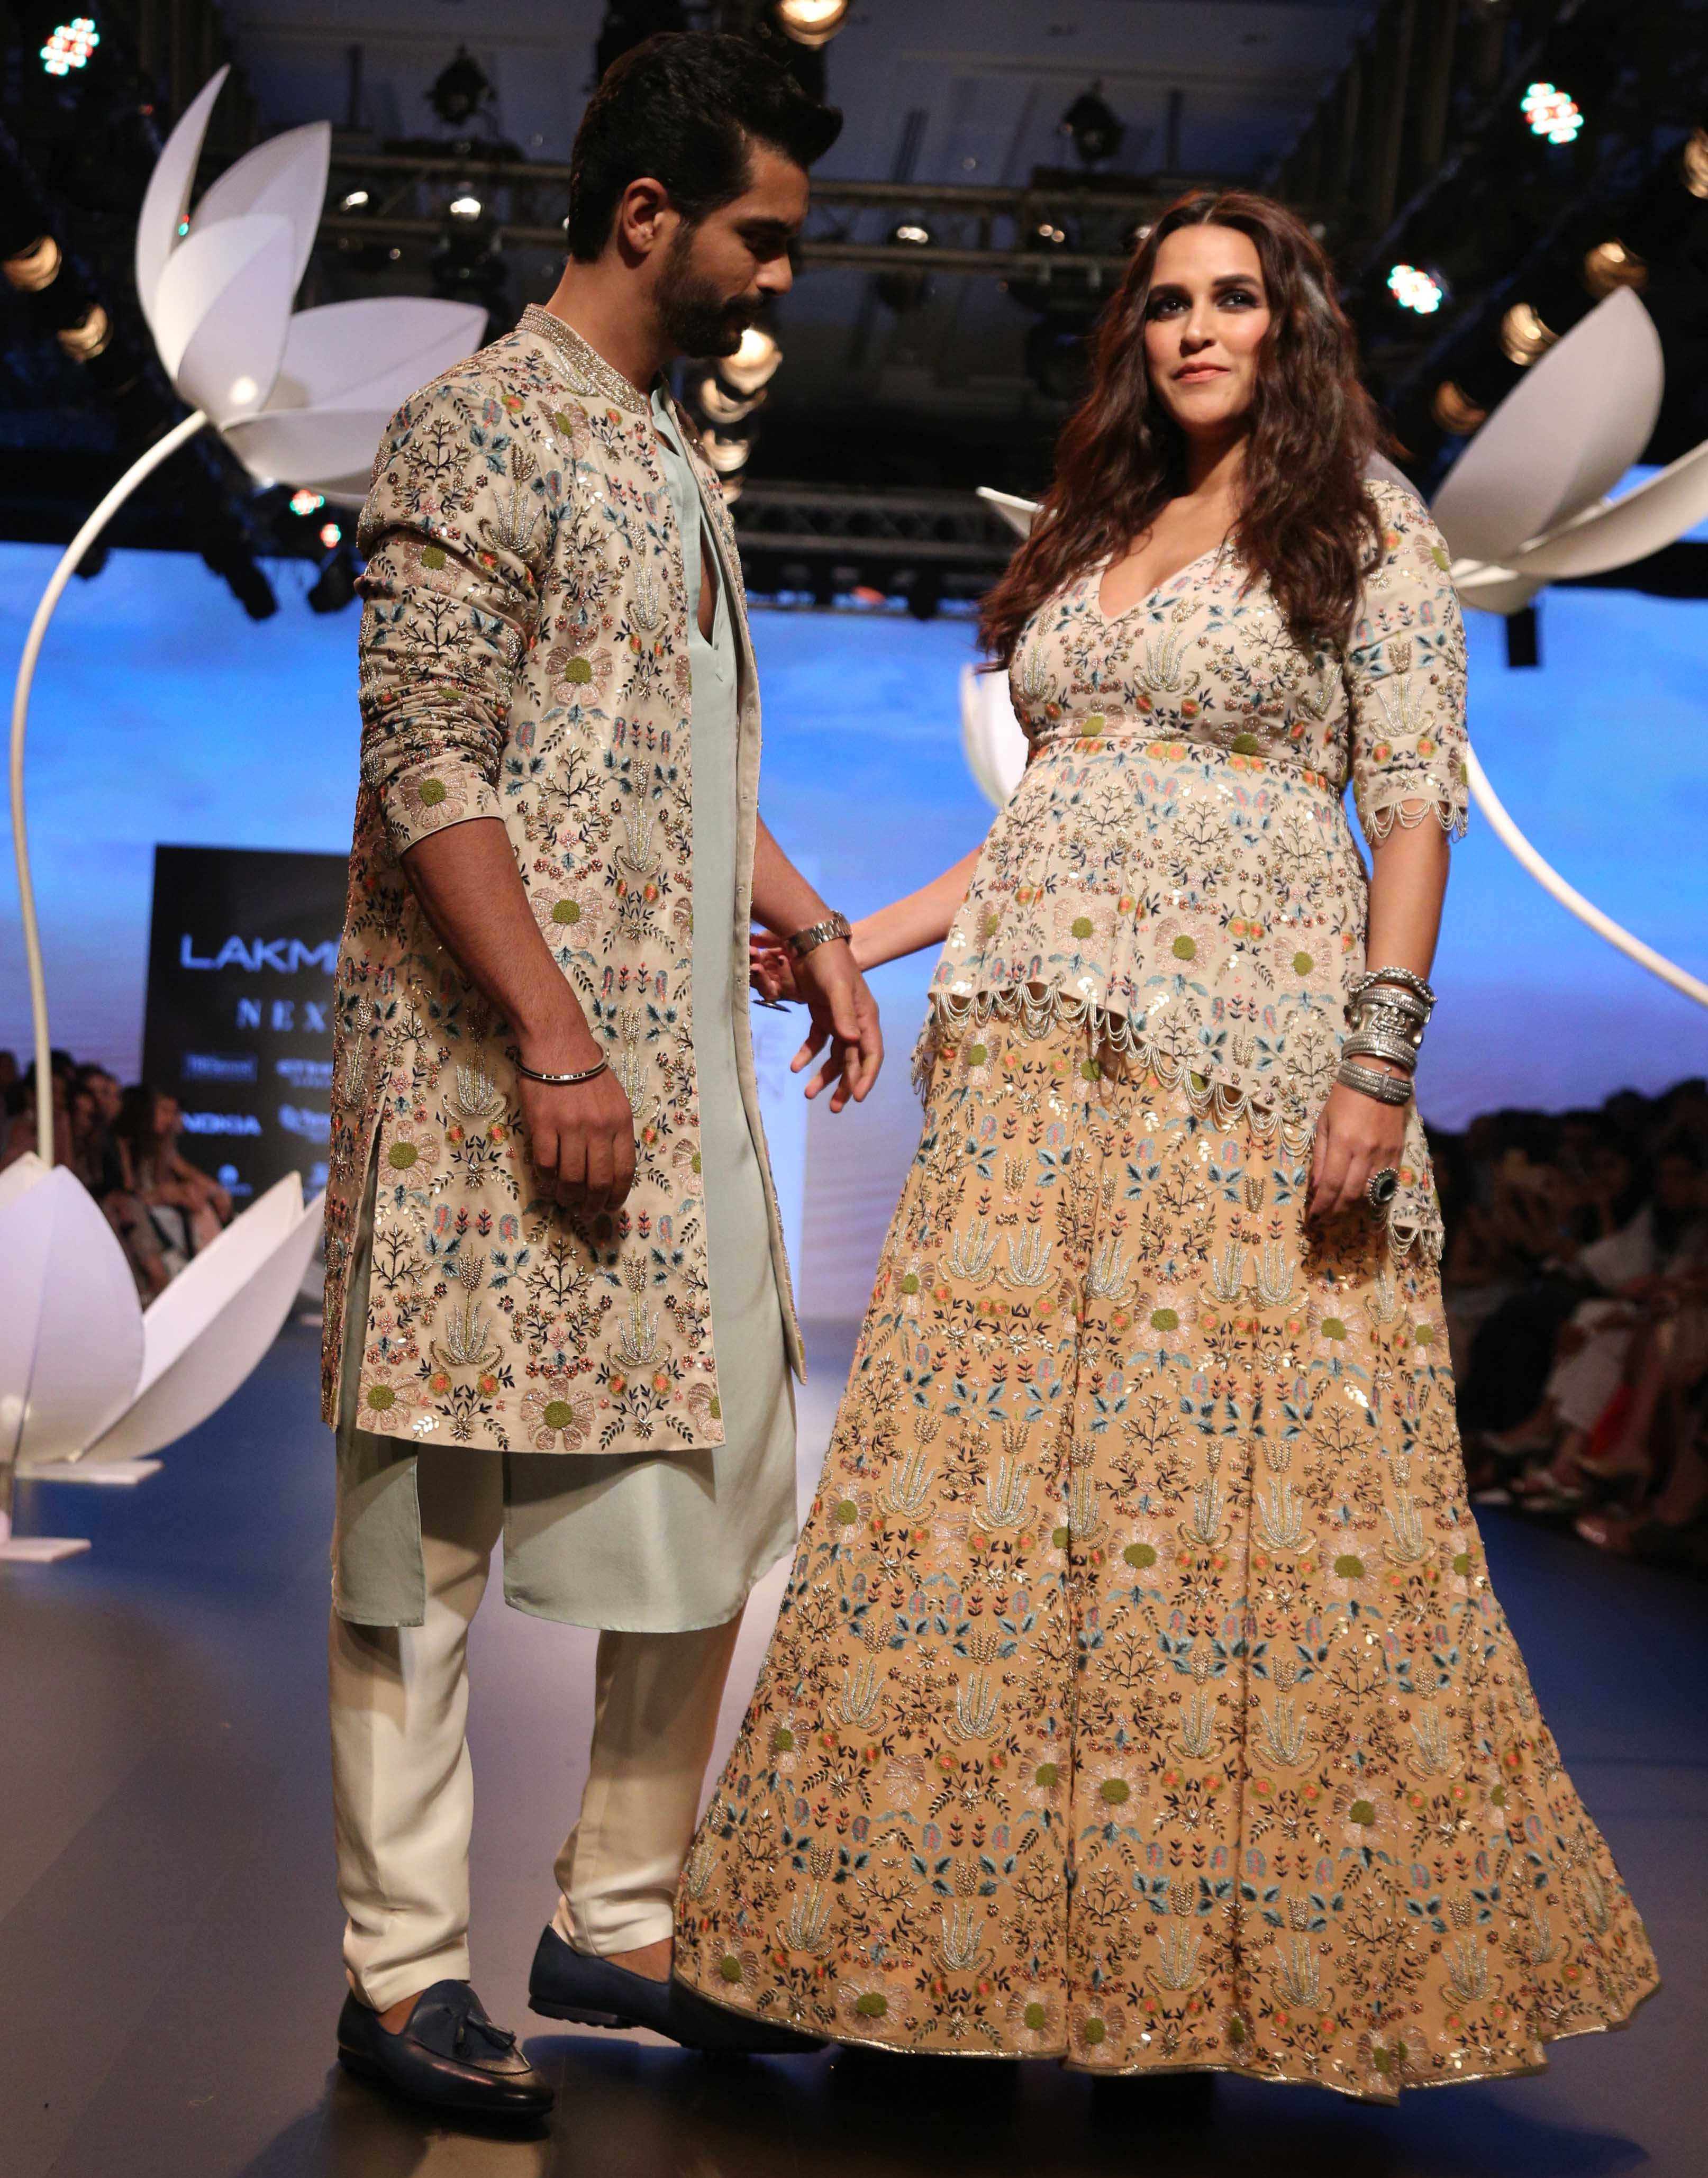 lfw 2018 DAY 4 SHOW 4 LAKME SALON AND PAYAL SINGHAL PRESENT THE SHOW STOPPING BRIDE (39)